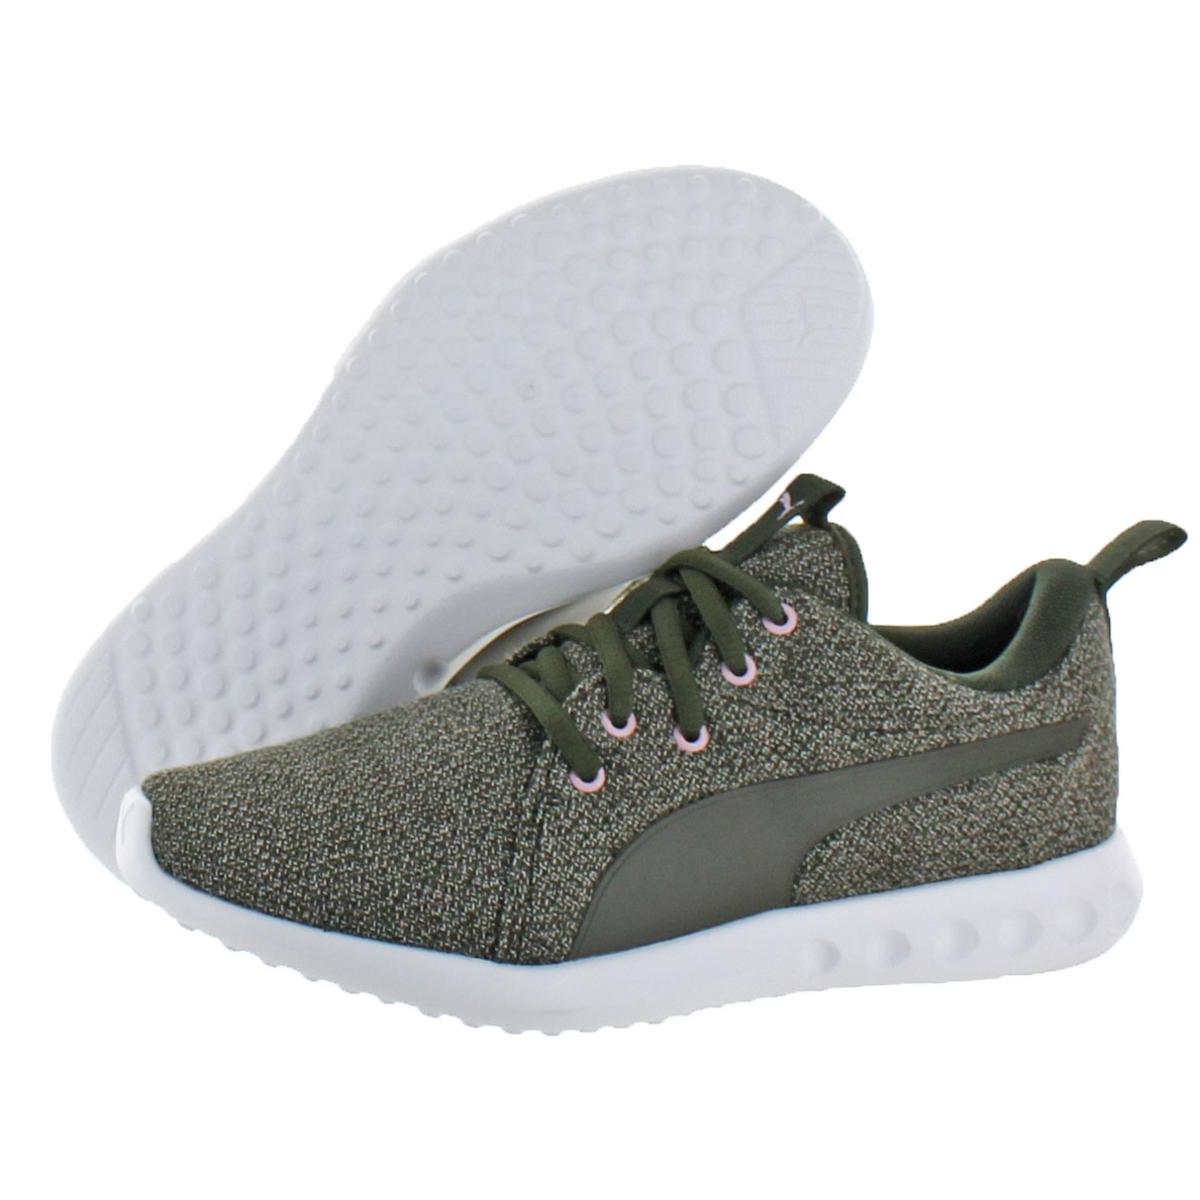 Puma Carson 2 Nature Knit Women s Low-Top Running Trainer Sneaker ... 8a724cb6b